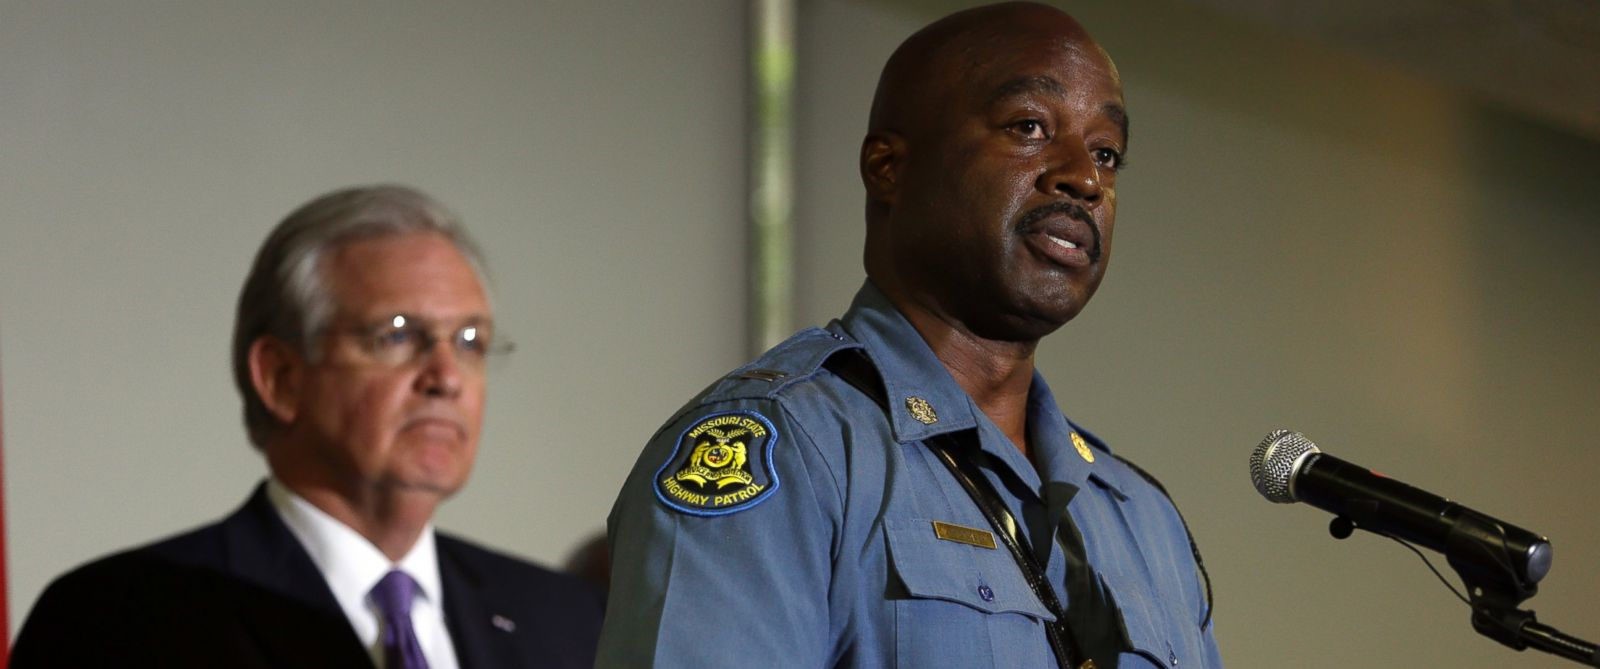 PHOTO: Capt. Ron Johnson of the Missouri Highway Patrol speaks during a news conference as Missouri Gov. Jay Nixon listens during news conference on Aug. 14, 2014, in St. Louis.